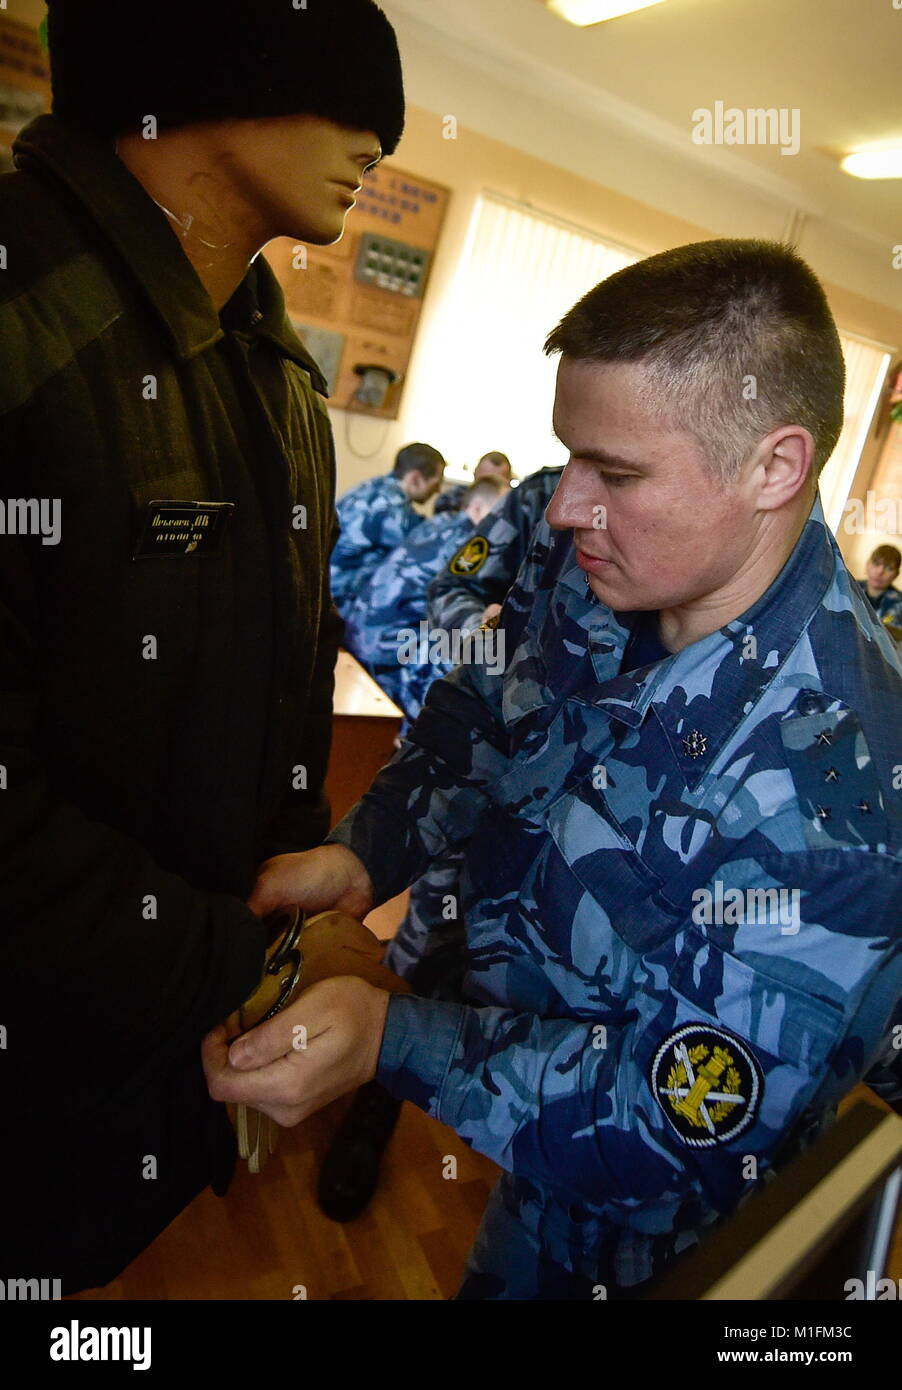 VLADIVOSTOK, RUSSIA - JANUARY 29, 2018: An employee of the Prisoner Escort  Service at the Main Directorate of the Russian Federal Penitentiary Service  seen ...